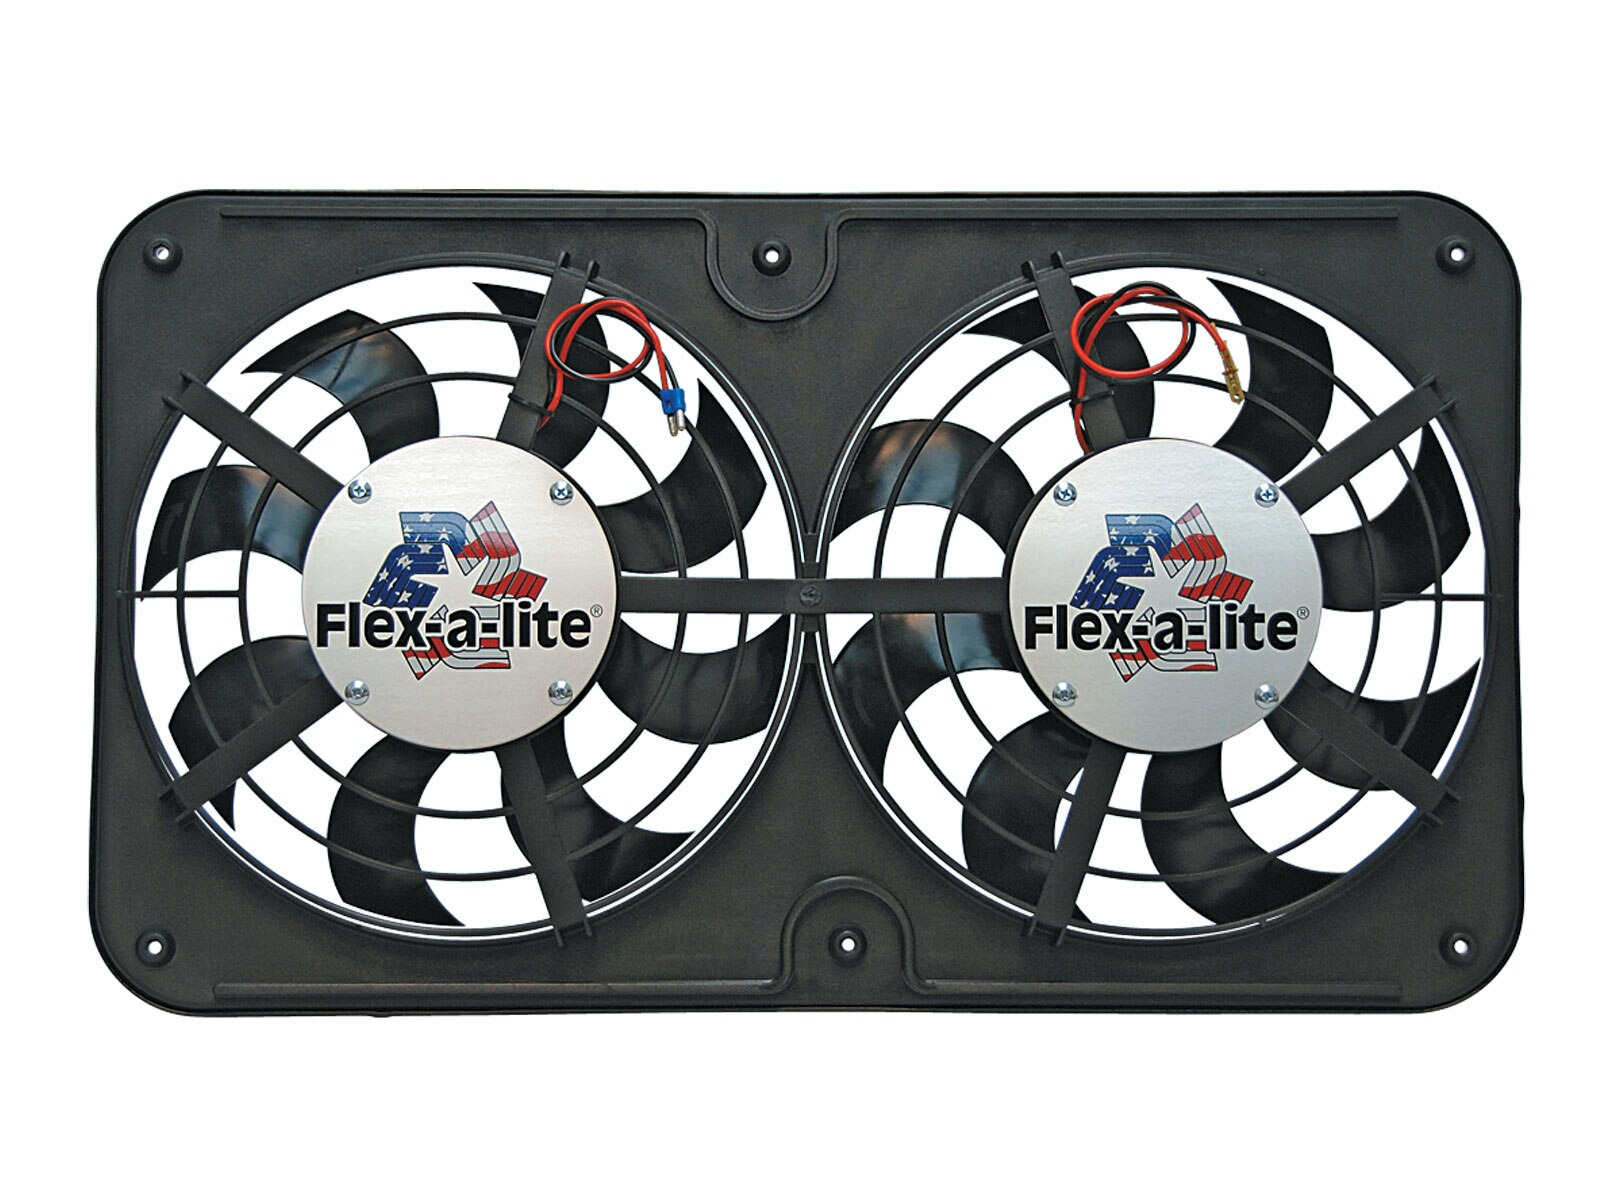 Flex-A-Lite's newest line of Low Profile Dual S-Blade fan system comes in its own shroud and dual 121/8-inch diameter fans featuring Flex-A-Lite's S-Blade design. The dual fan systems flow 2500 CFM of air and are available in